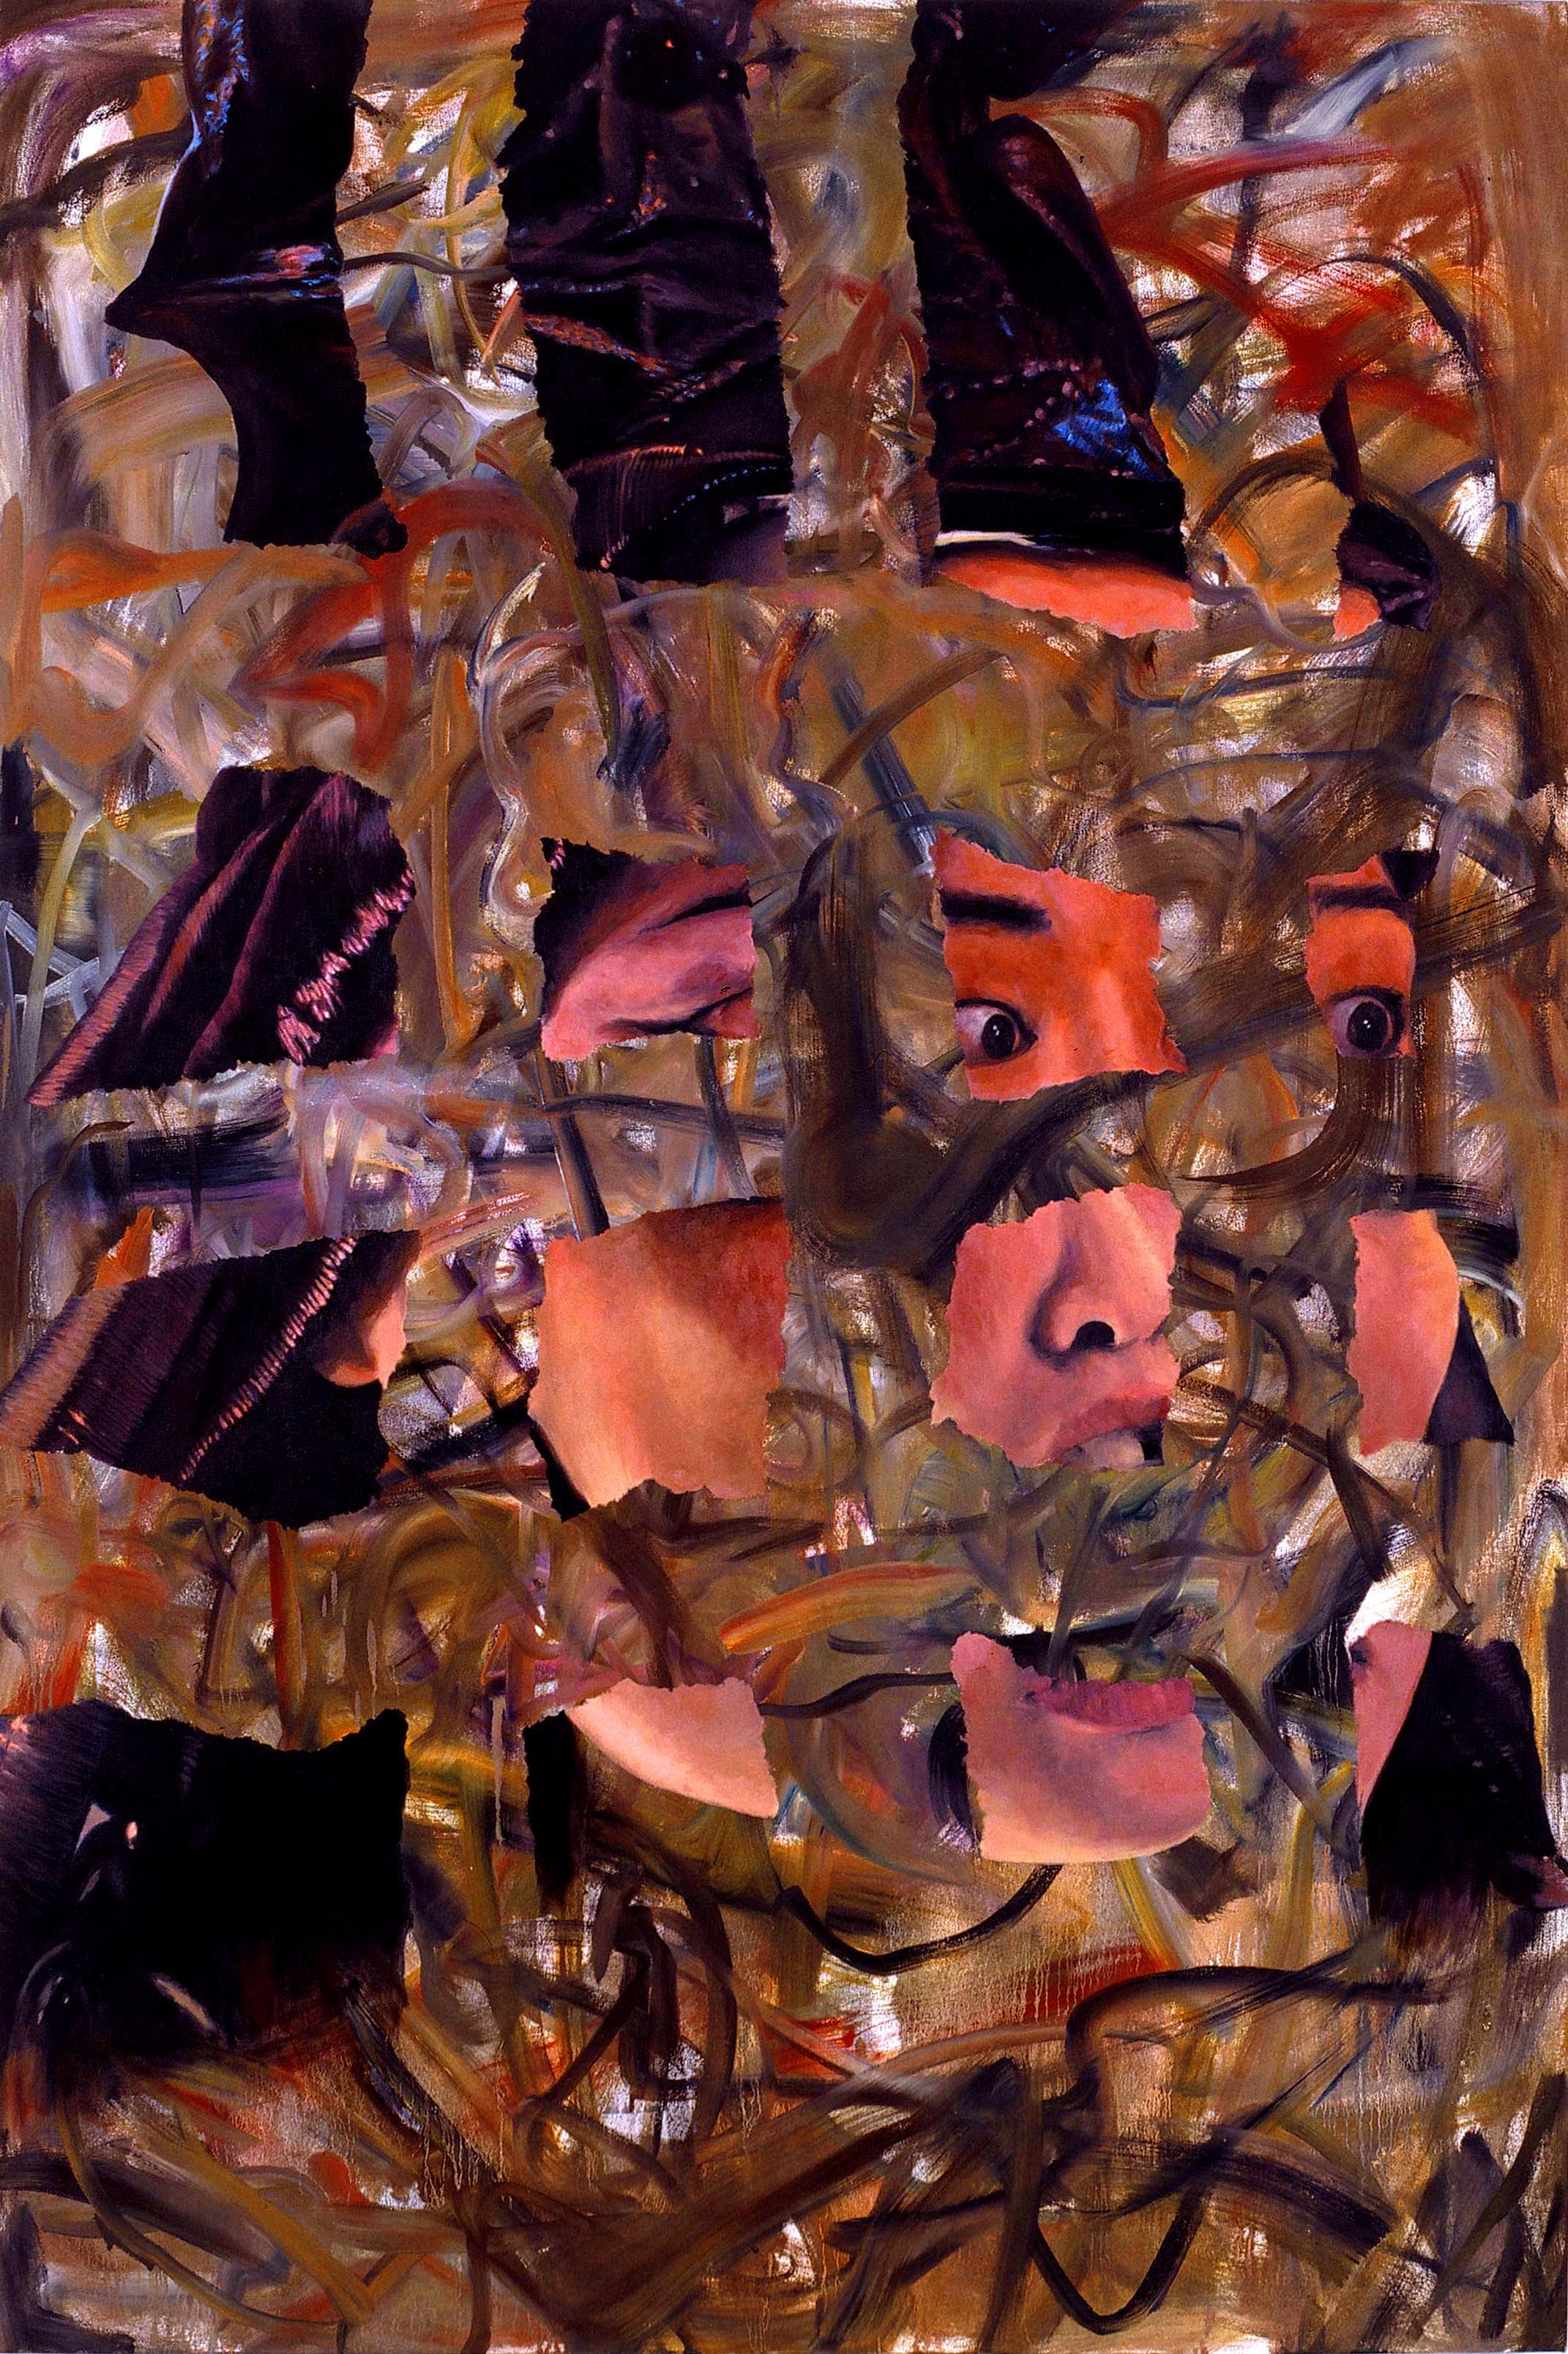 Untitled, Ripped up Face Painting (Sachi), 2005 oil on canvas 184 x 122 cm - 72 1/2 x 48 inches